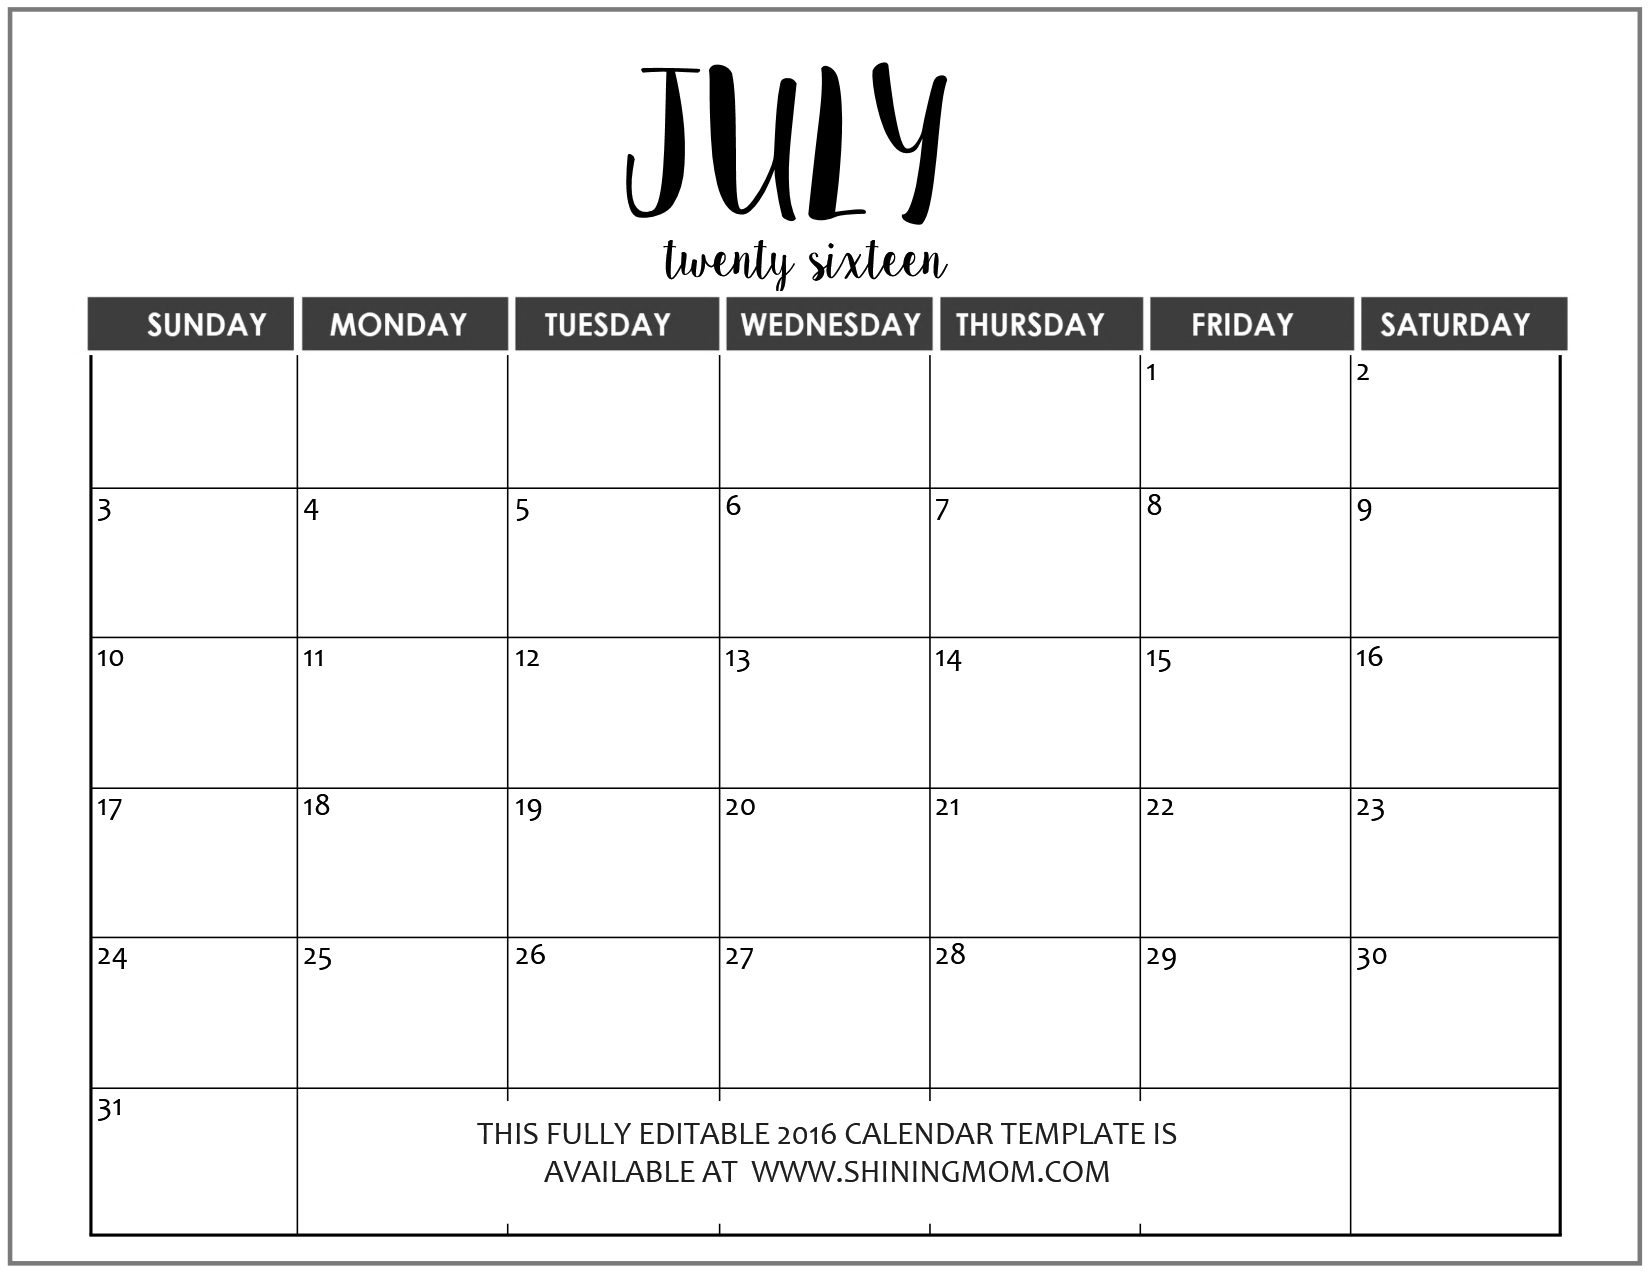 Just In Fully Editable 2016 Calendar Templates In Ms Word Format3abry